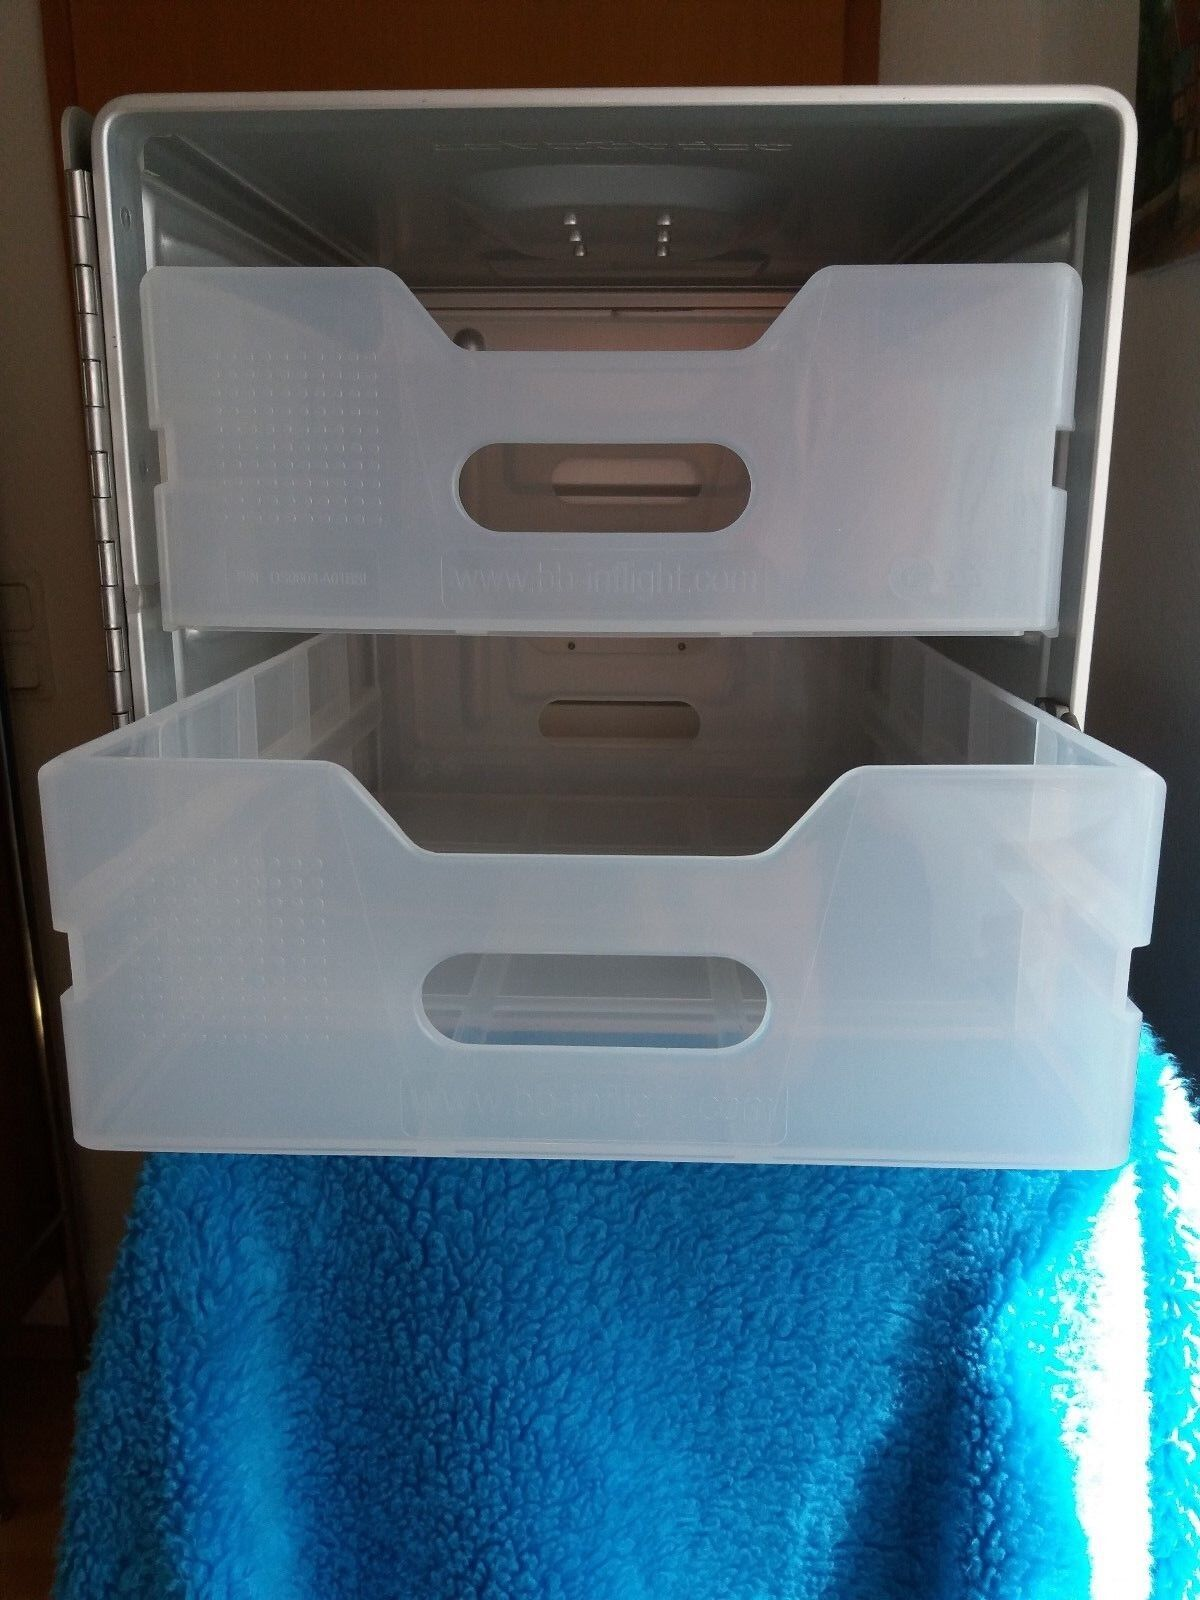 Standard Container Unit Flugzeugtrolley Catering Box inkl. 2 Schubladen